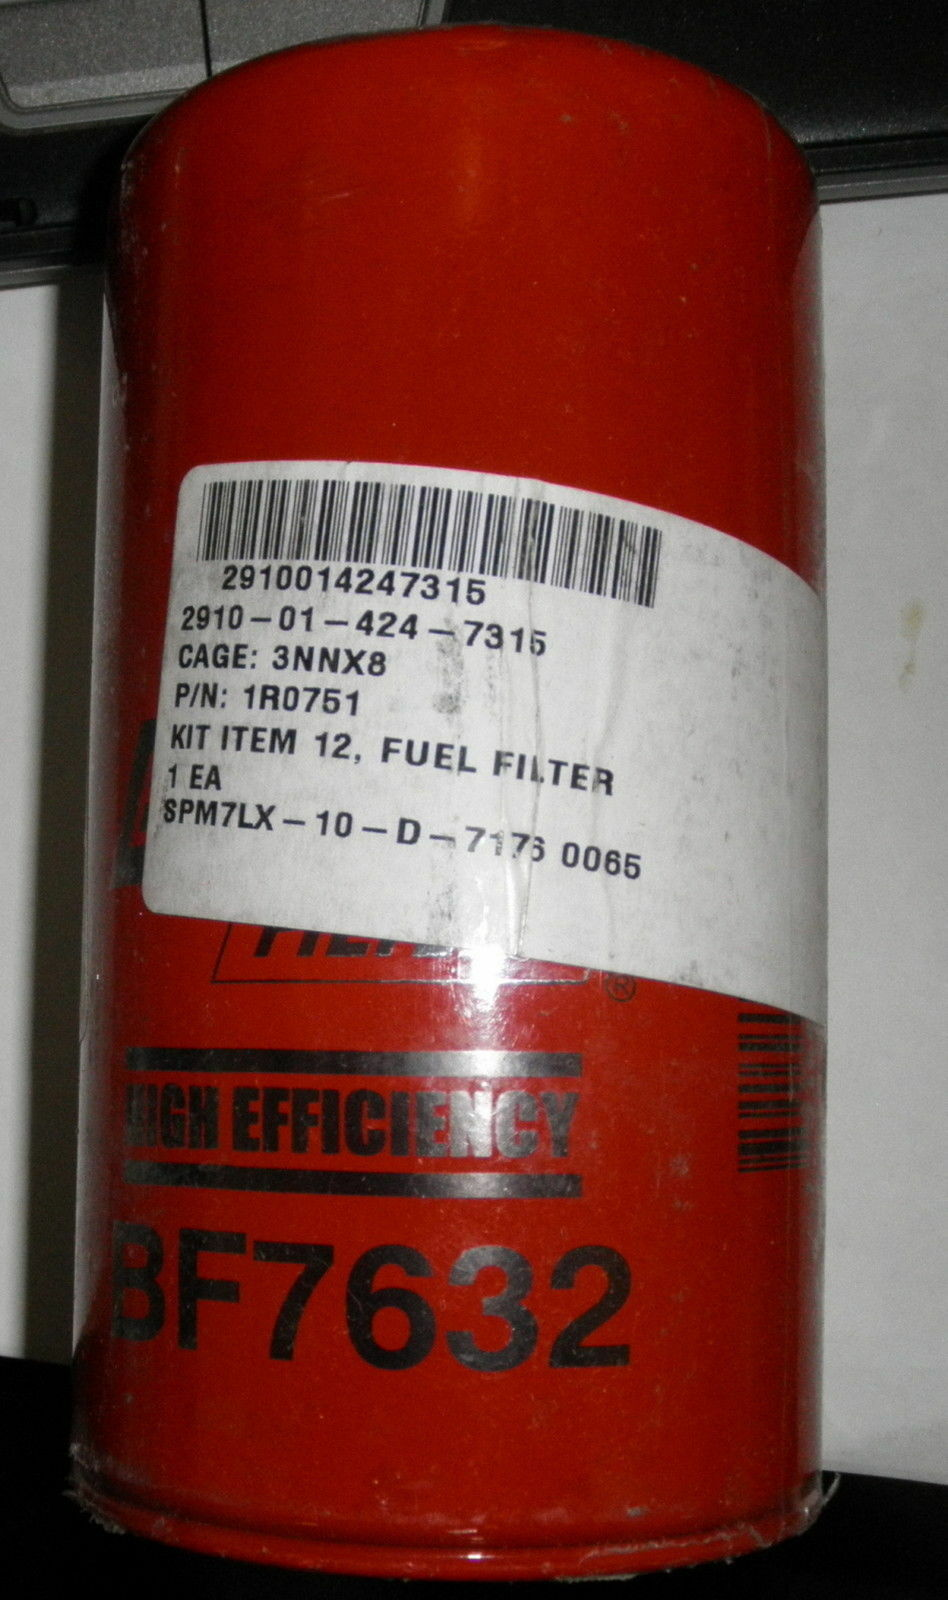 Baldwin Fuel Filter Bf7632 Wix 33626 Fleetguard Ff5324 1r 0751 2910 Bendix Filters 1 Of 1only Available